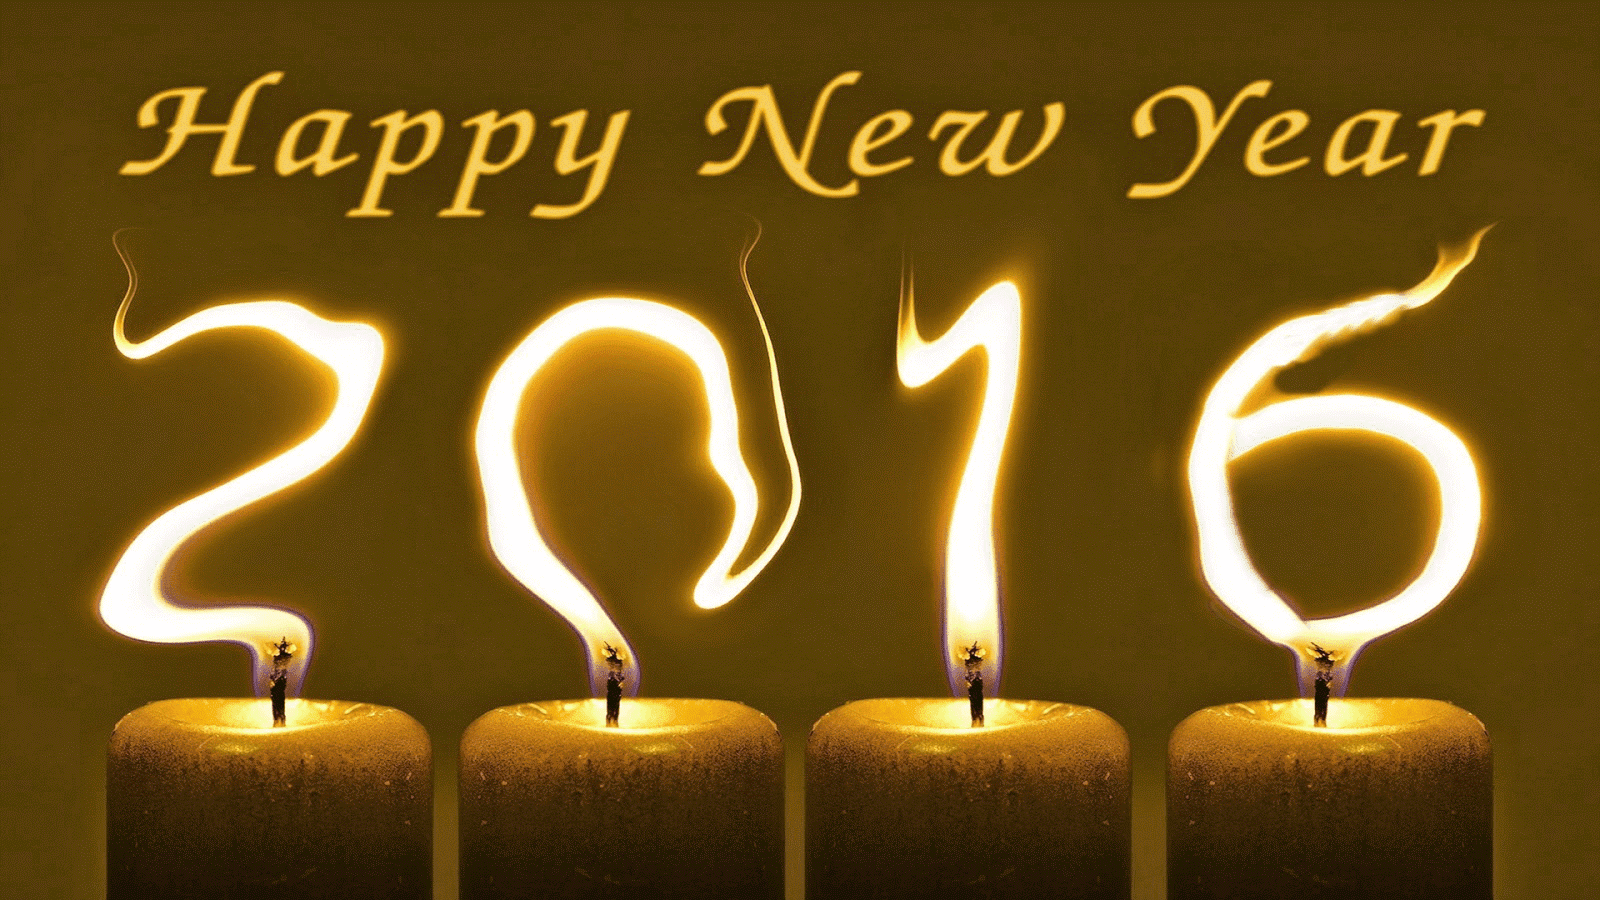 Happy New Year 2017 Wallpapers Hd Download Free 1080p